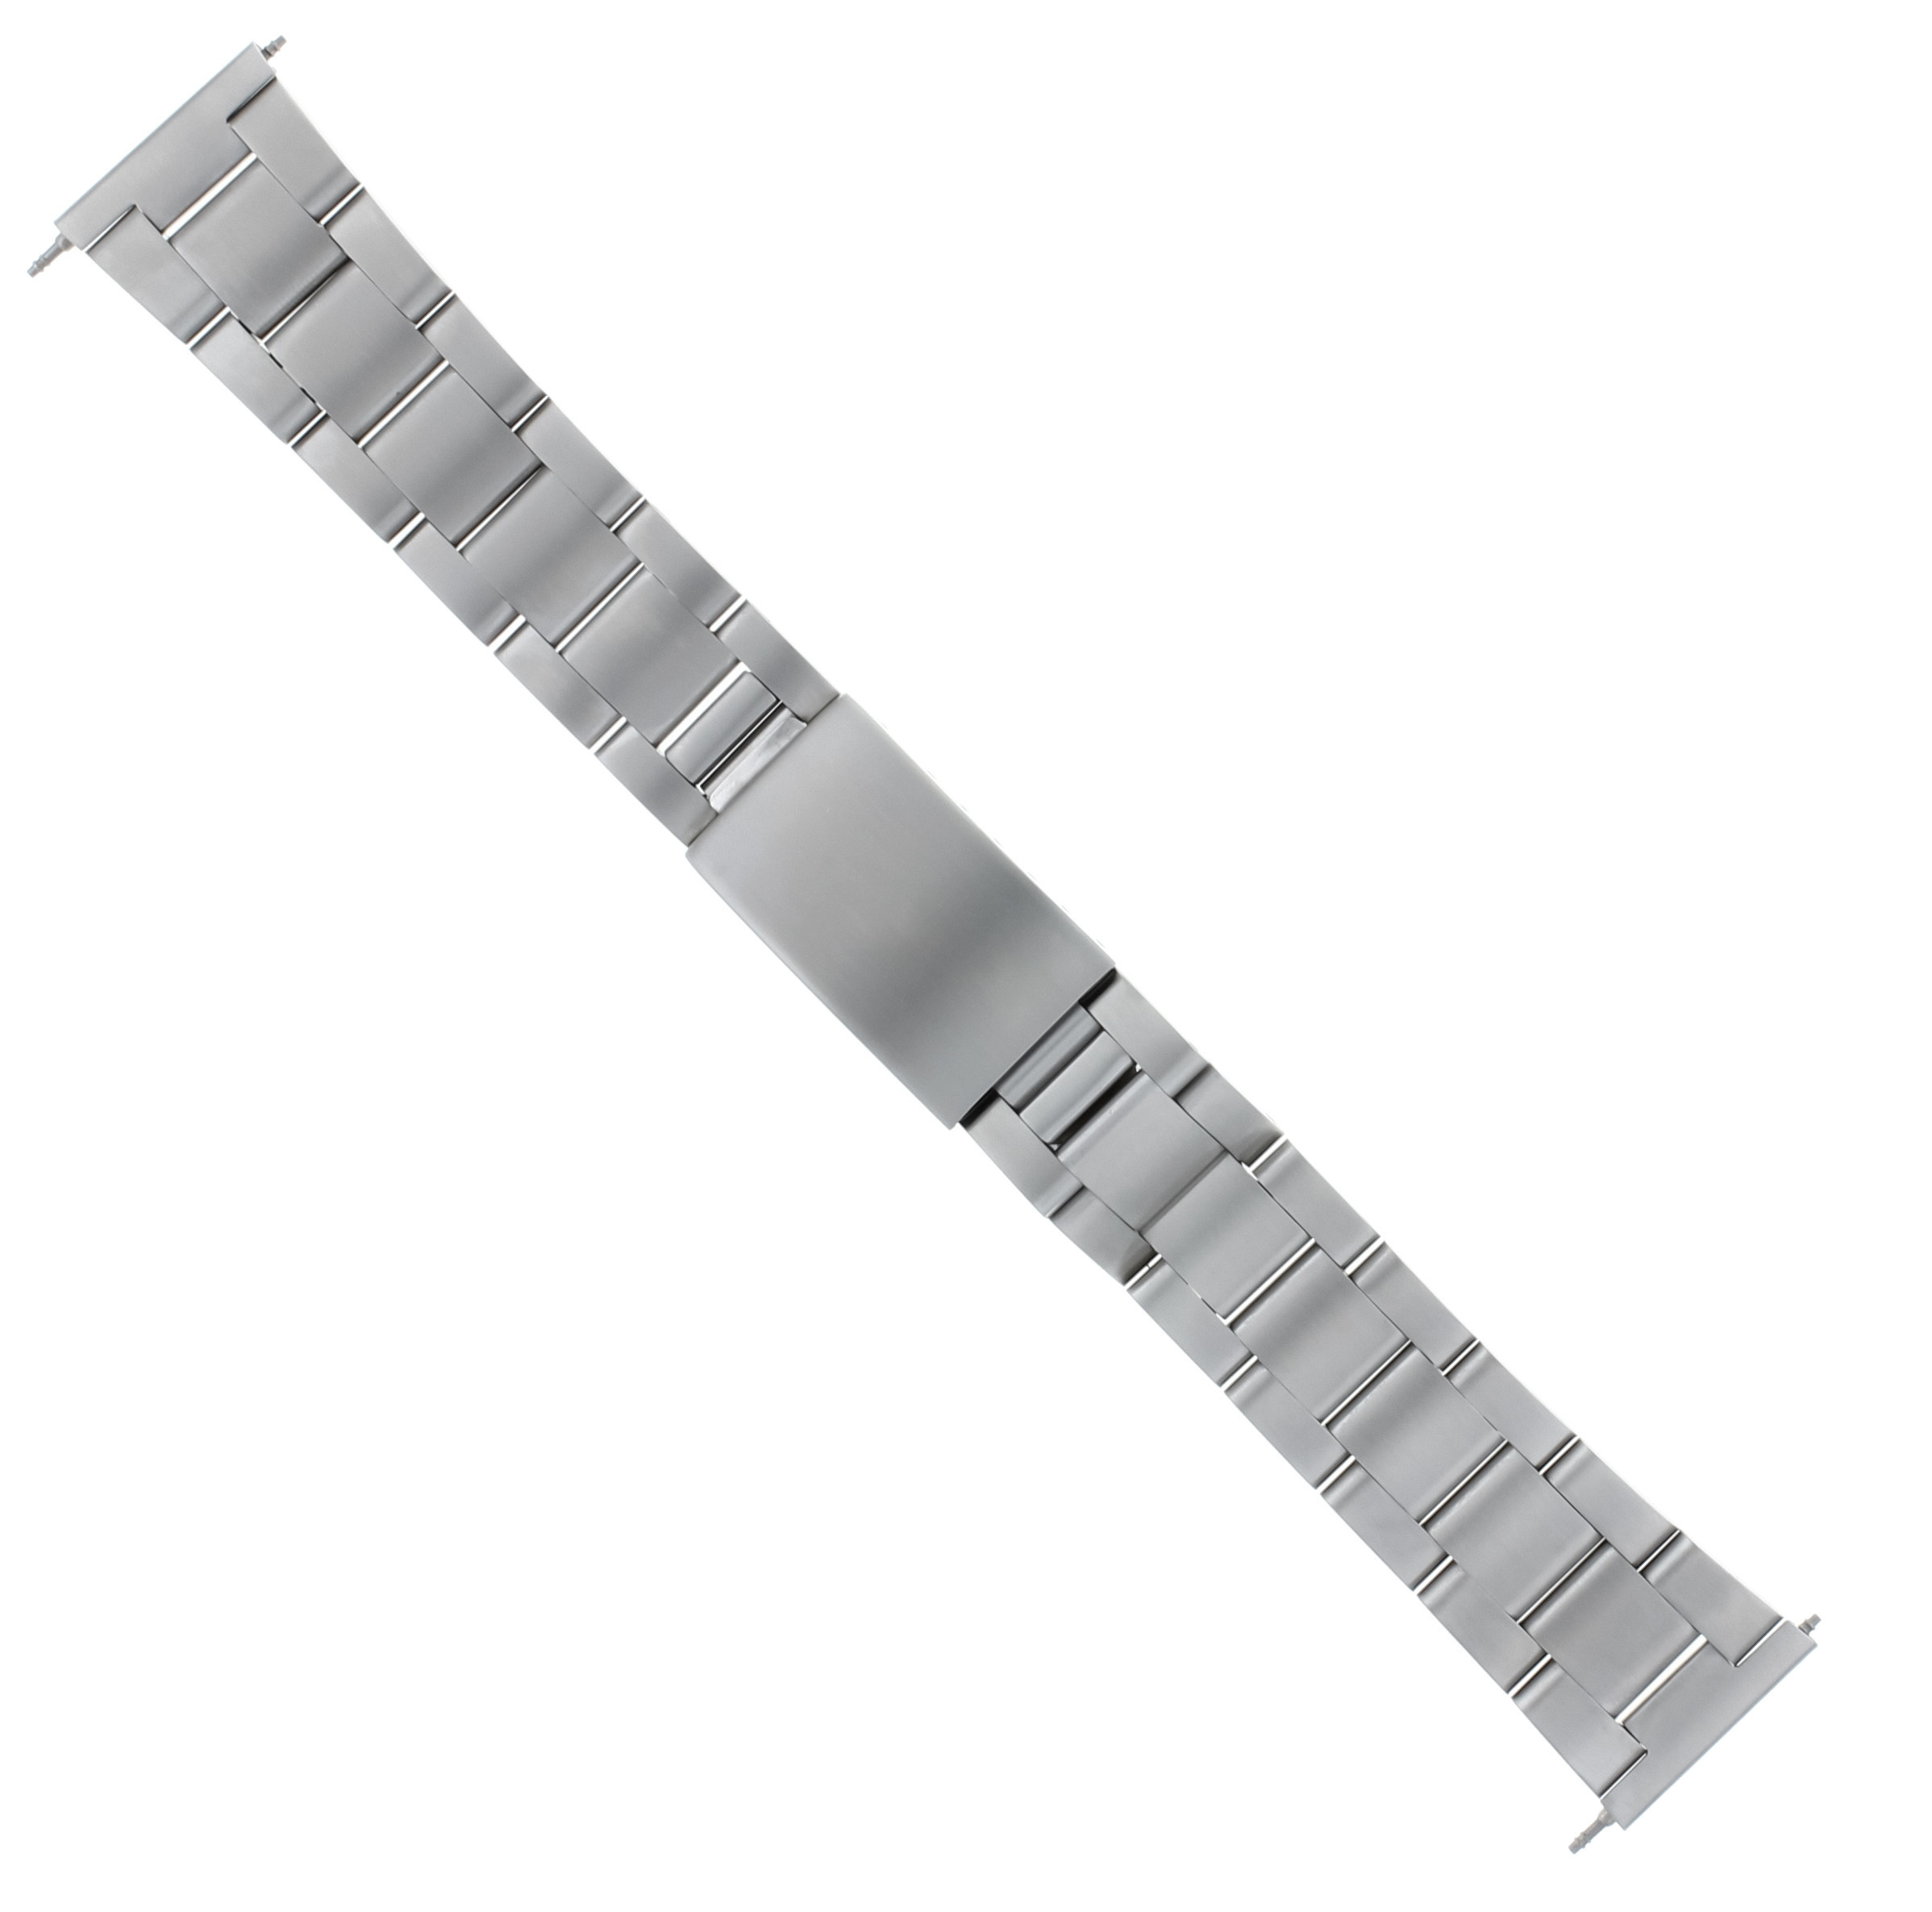 19MM HEAVY OYSTER WATCH BAND BRACELET FOR ROLEX 6694 AIR KING 7205 STEEL  S/END